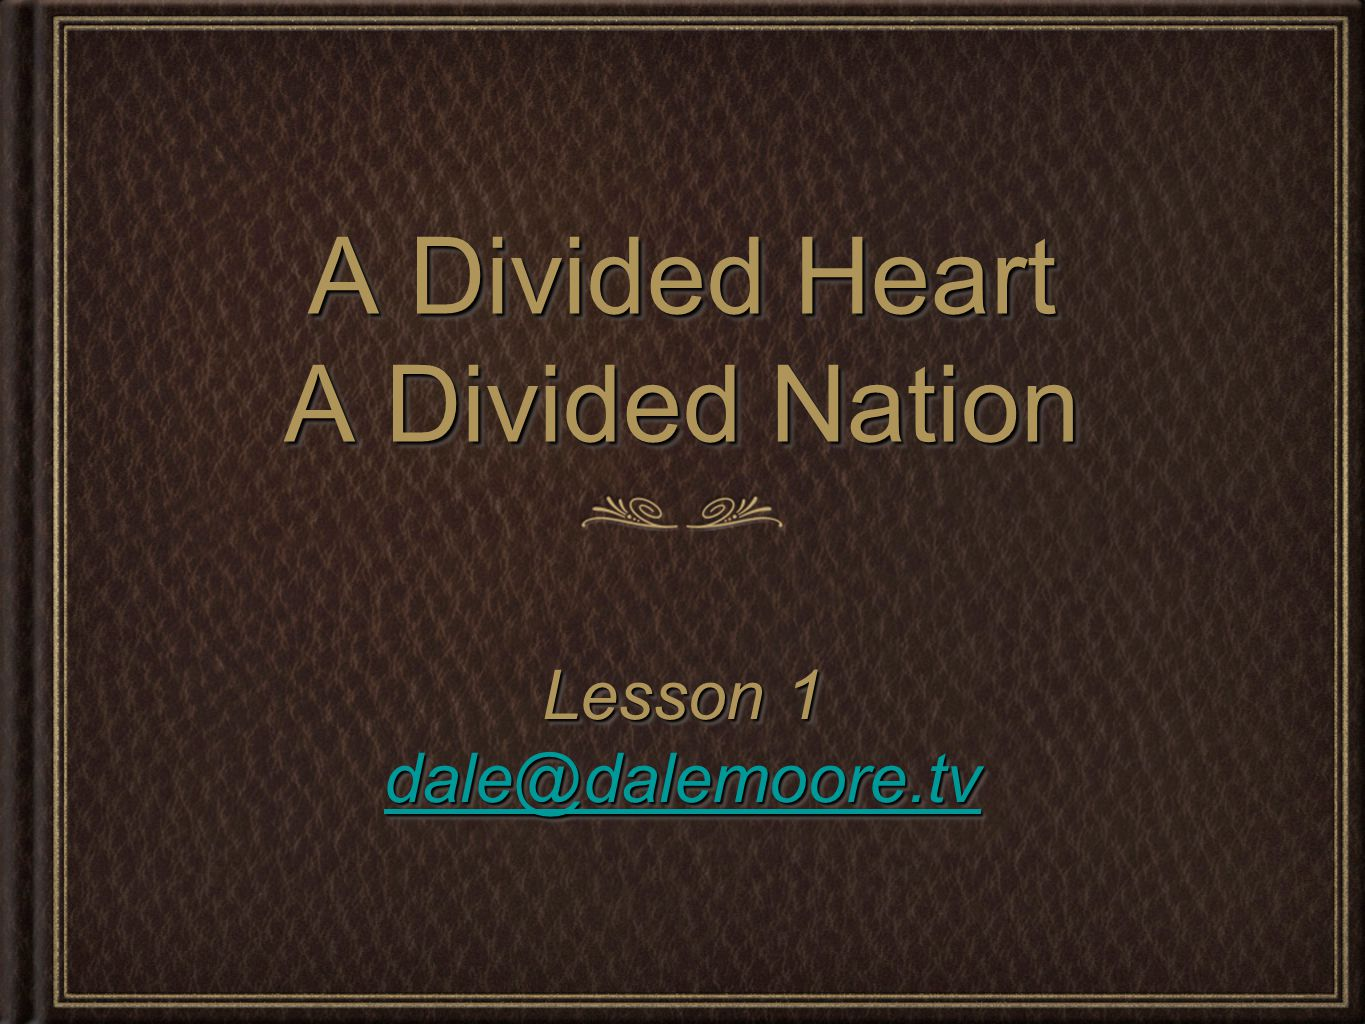 A Divided Heart A Divided Nation Lesson 1 dale@dalemoore.tv Lesson 1 dale@dalemoore.tv